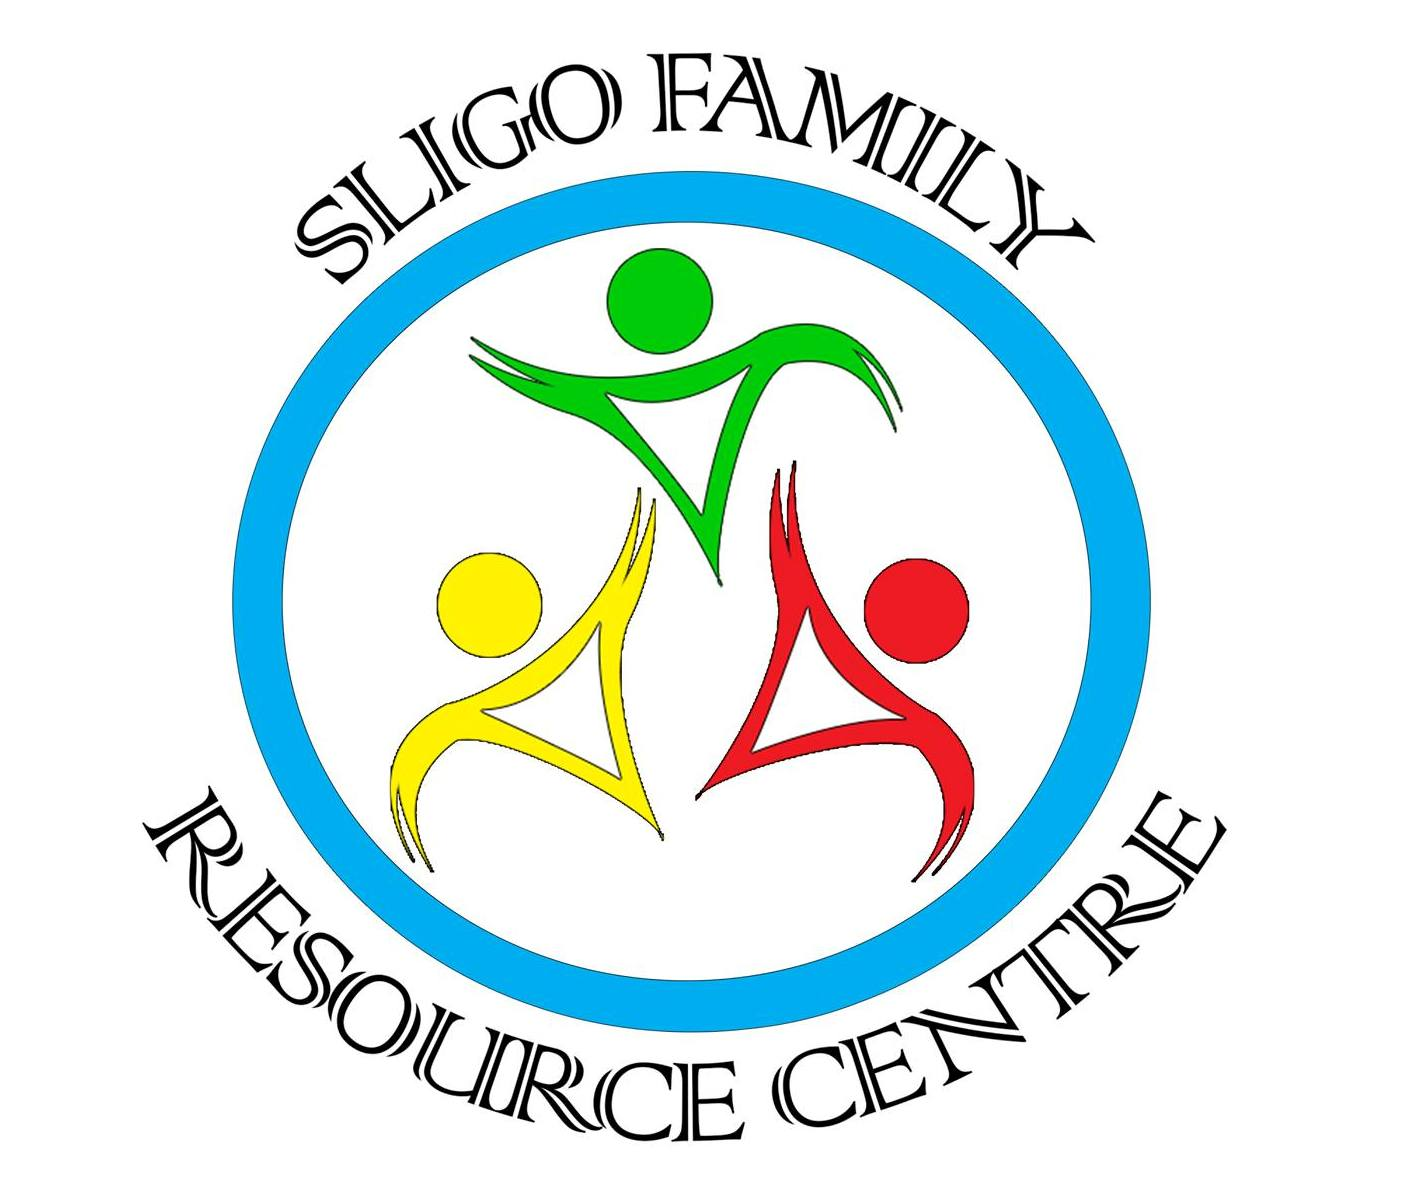 Sligo Family Resource Centre (Sligo FRC)